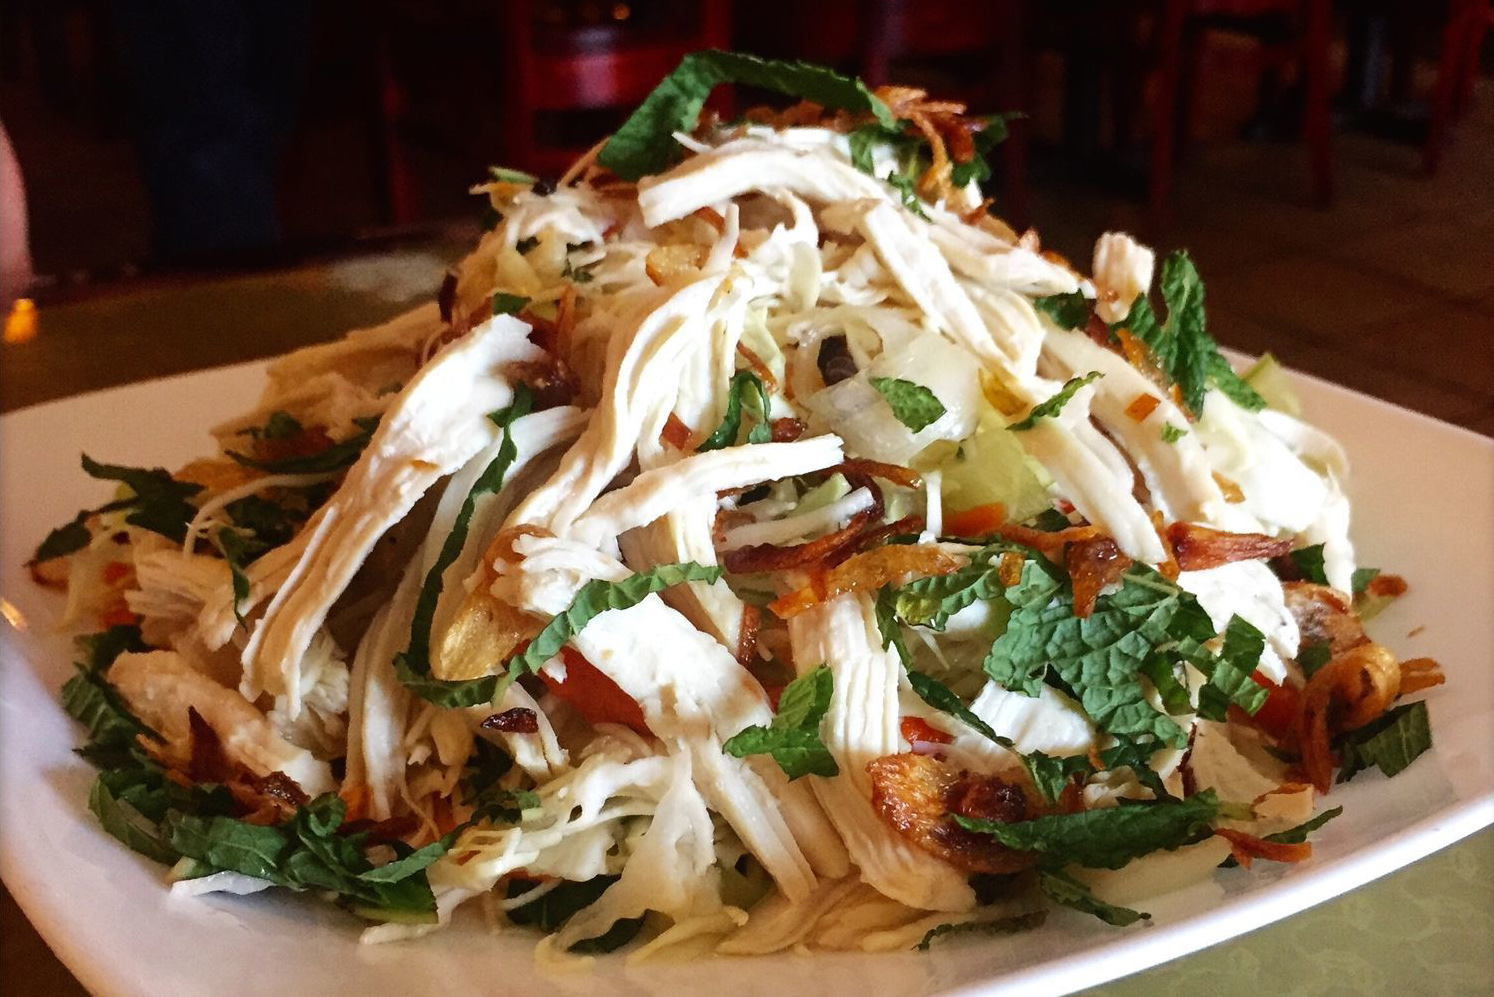 The citrusy goi ga chicken and cabbage salad with mint at Pho & Beyond in Willow Grove. (CRAIG LABAN / Staff)